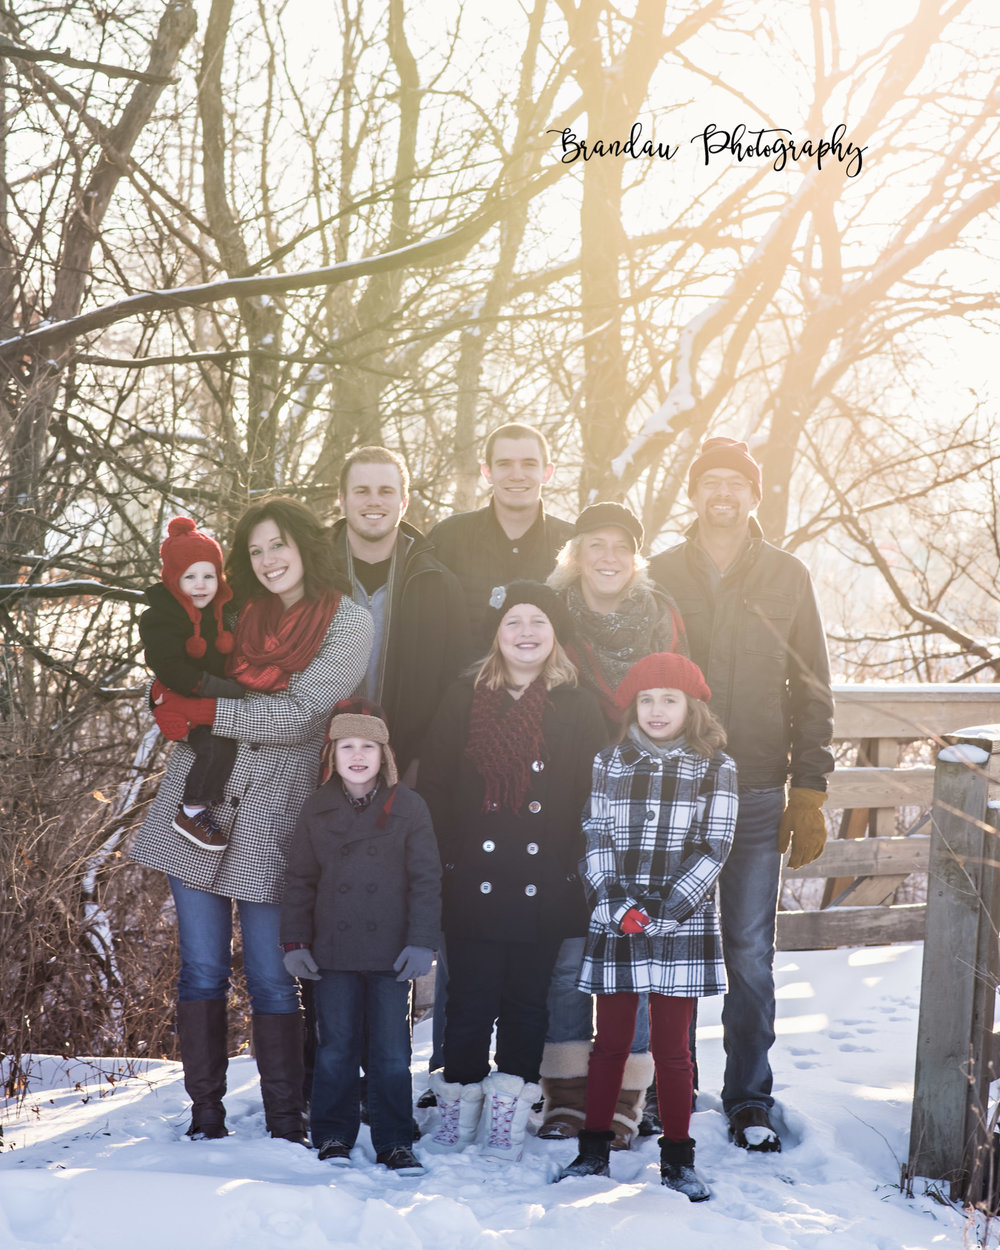 Brandau Photography - Family Photo - Central Iowa - Cambridge Iowa